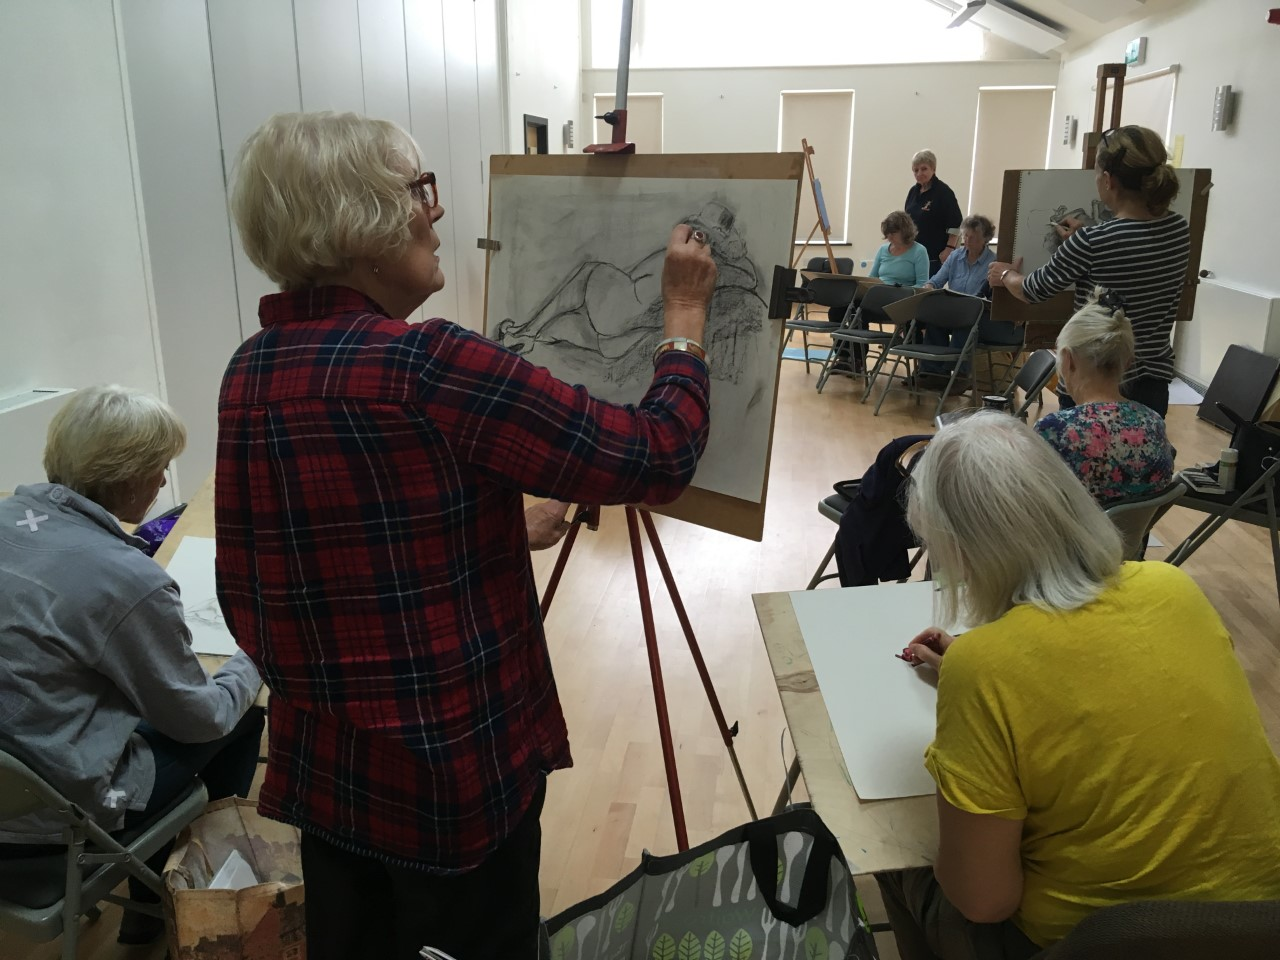 Layer Life Drawing, Photograph of group working, January 2019